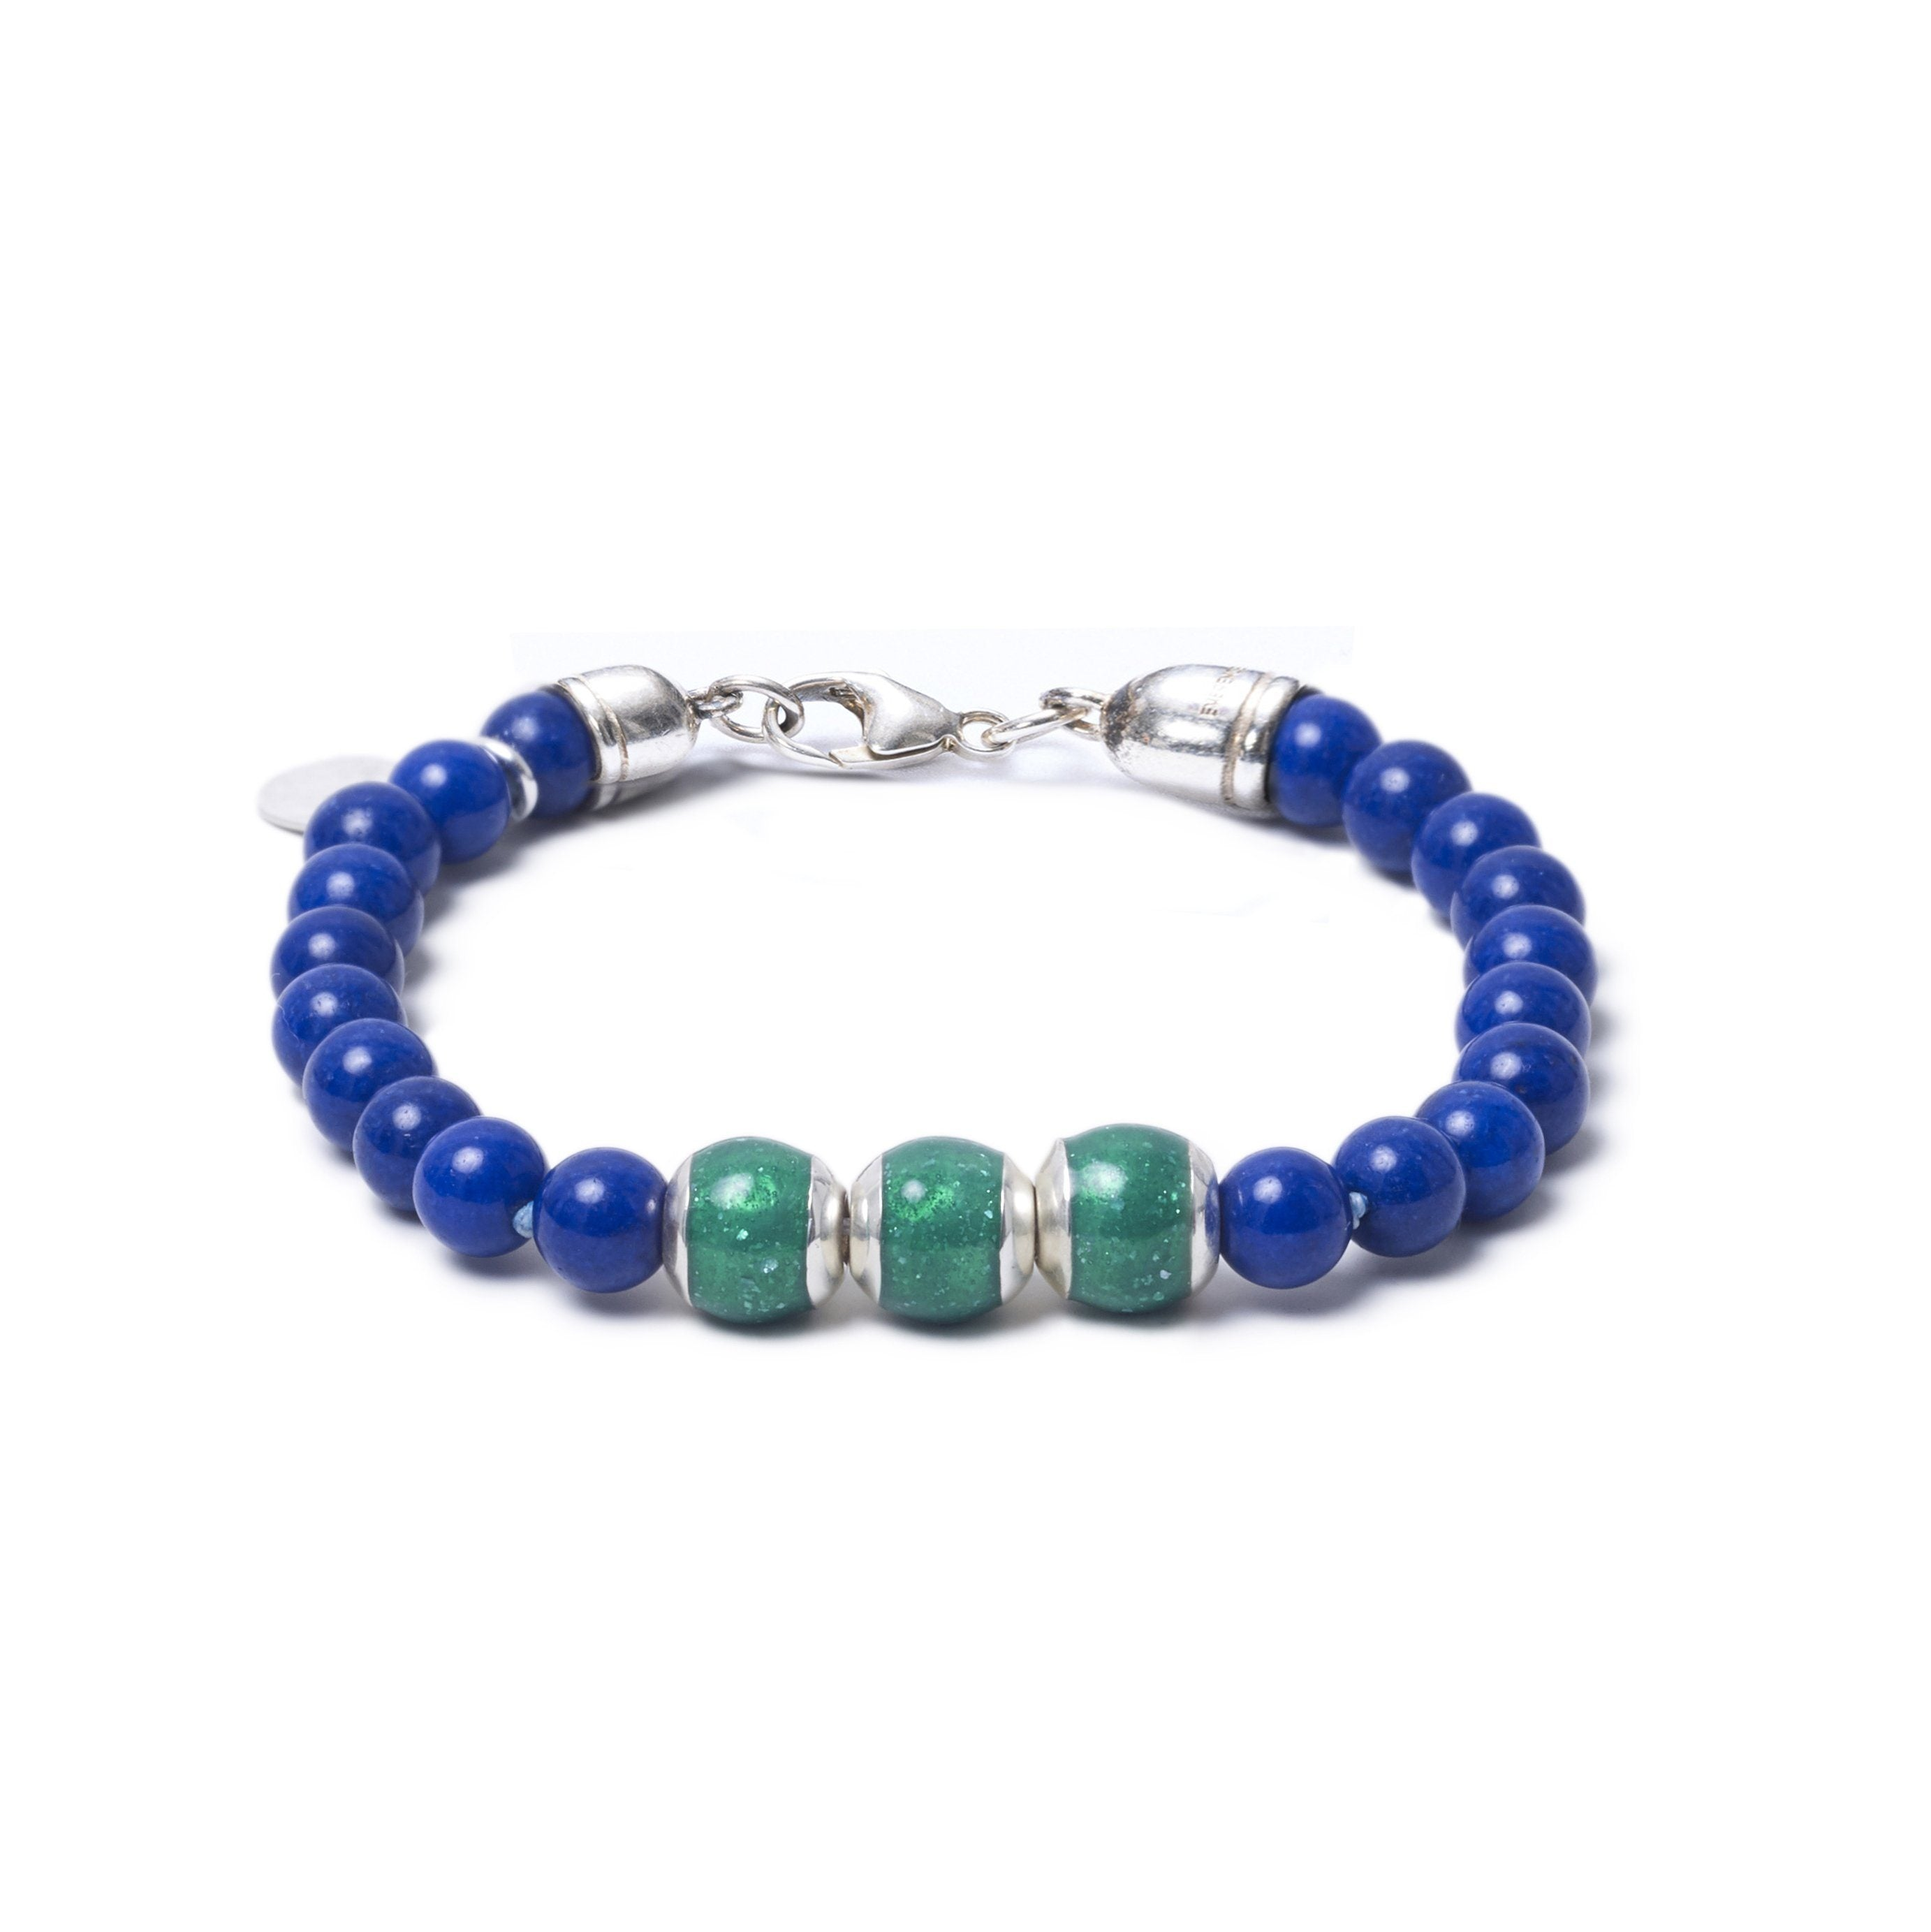 Lapis Lazuli, Three Everence Beads everence.life Green Lobster Claw 7